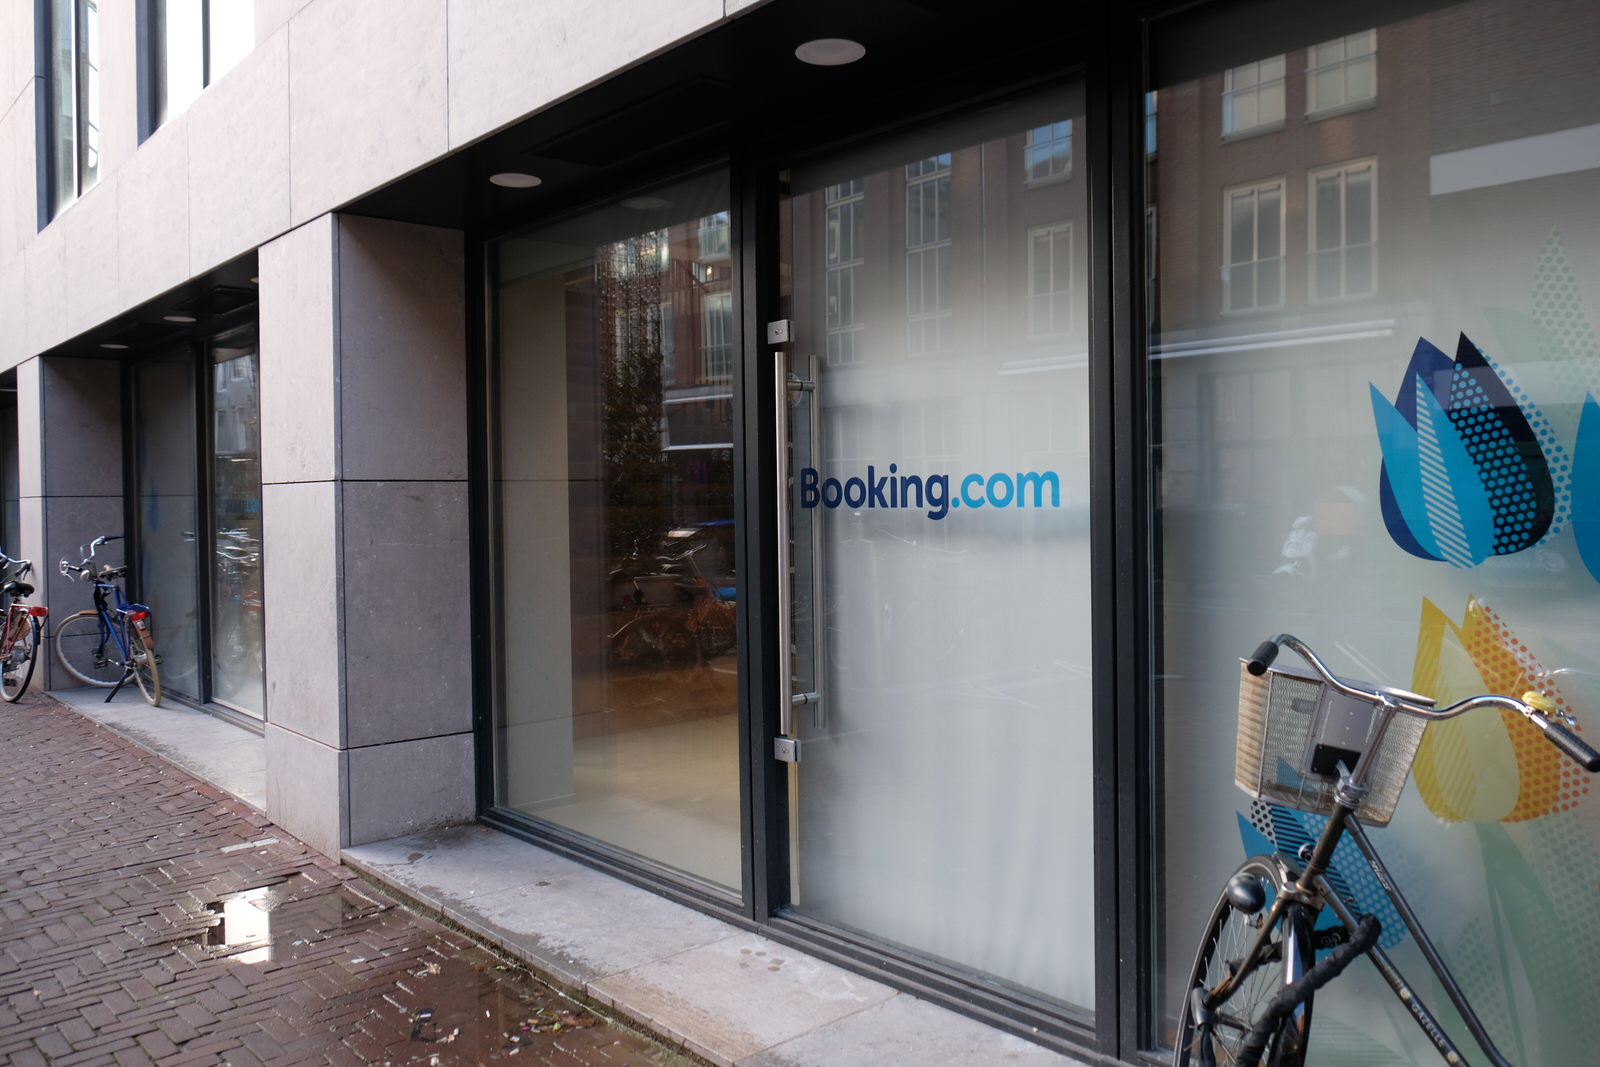 Entrance to Booking office in Amsterdam, the Netherlands.